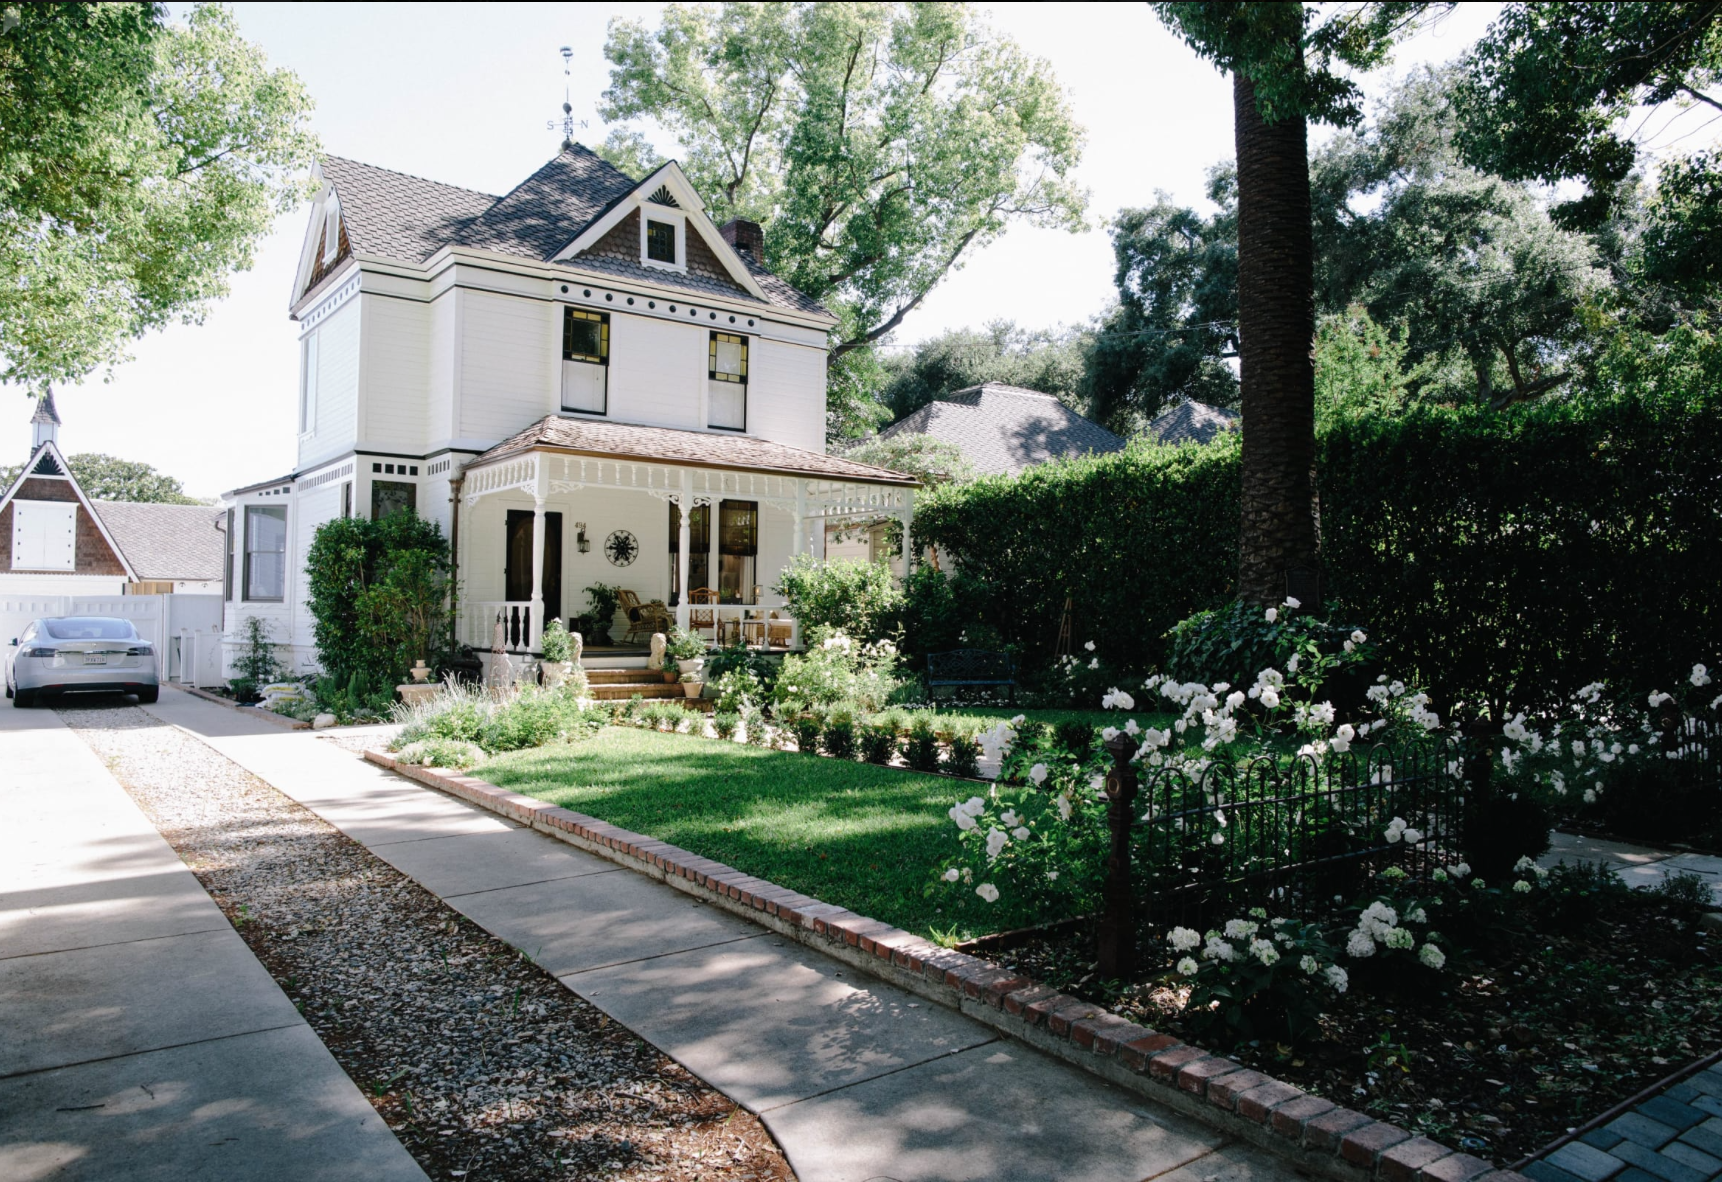 The Farmhouse - PasadenaA heavenly three story, 2,500 sq ft folk victorian farmhouse built in 1886. A designated historic monument located on a tree canopied street in Pasadena with white gardens and a 3,200 sq ft vintage barn.